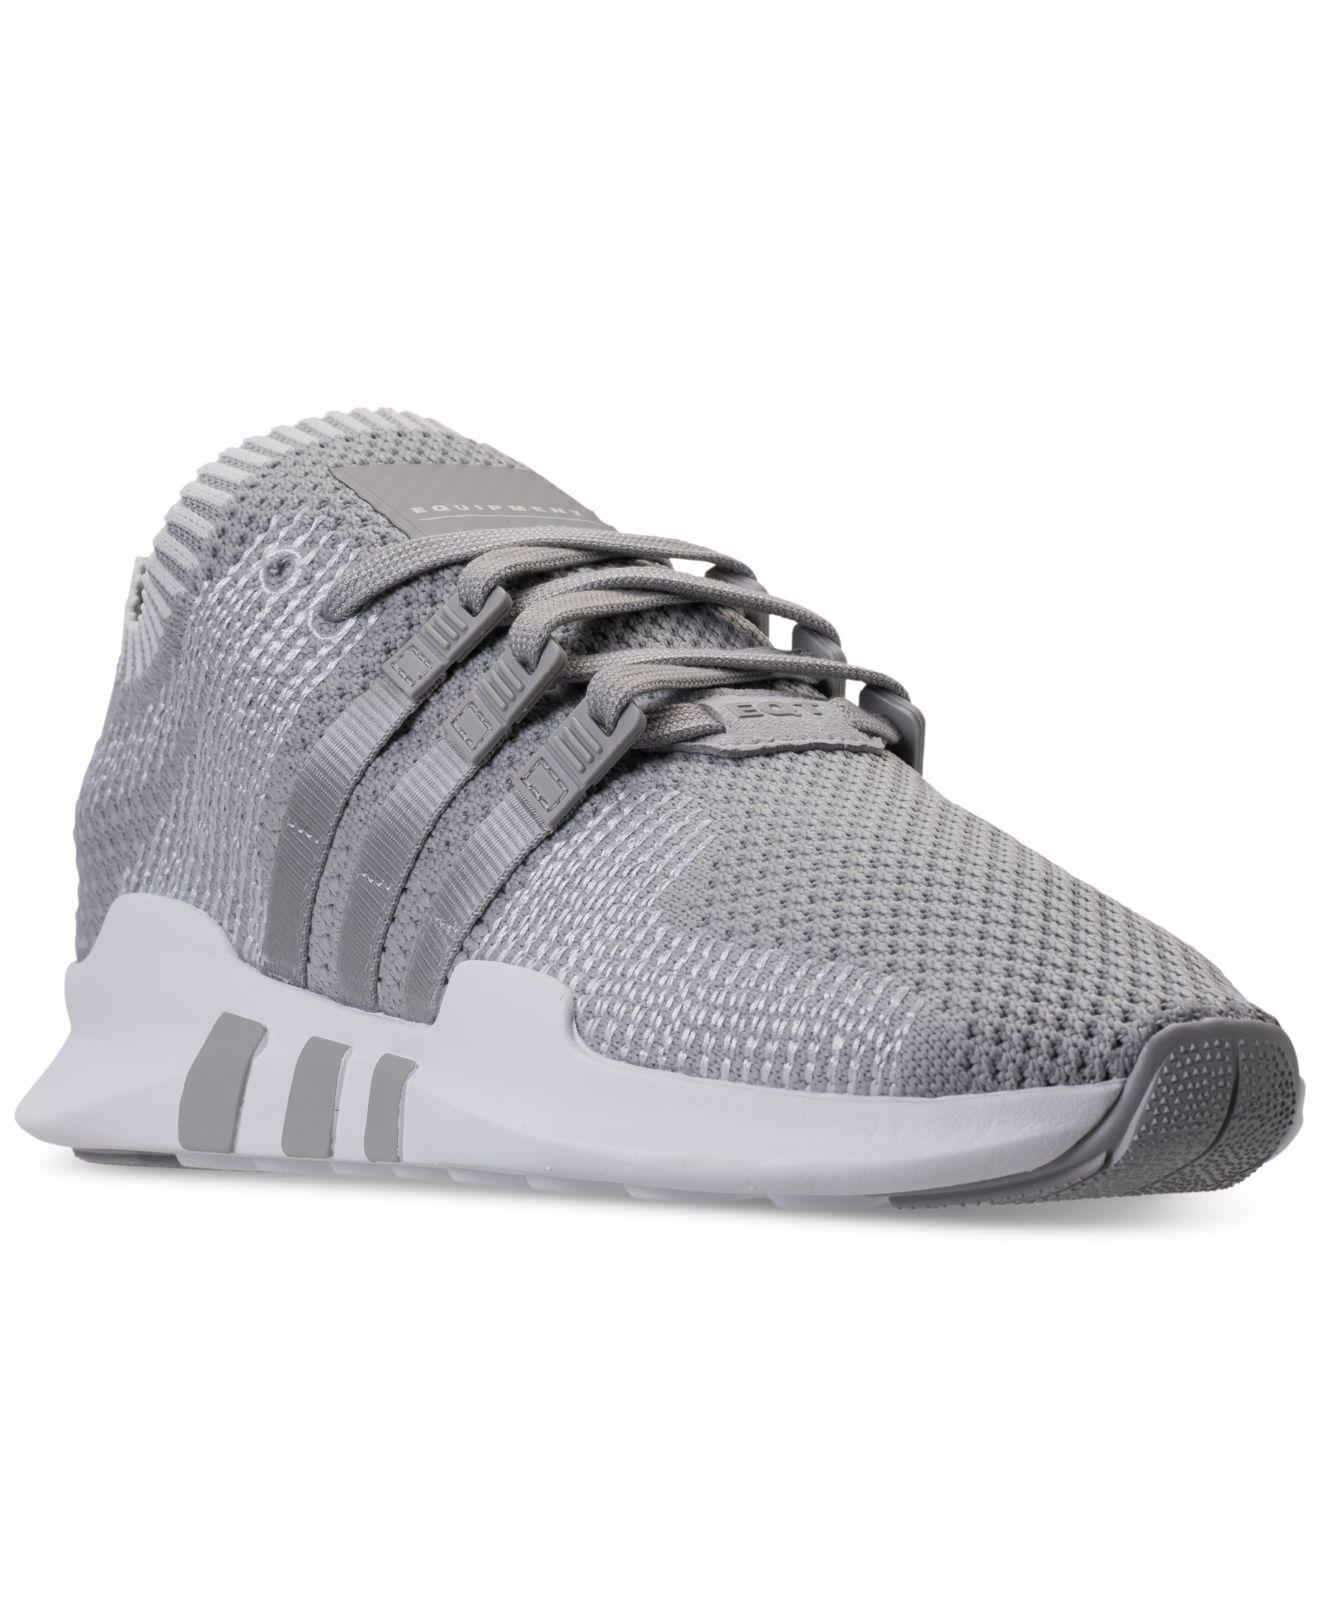 30f41a948 Lyst - adidas Men s Eqt Support Adv Primeknit Sneakers From Finish ...